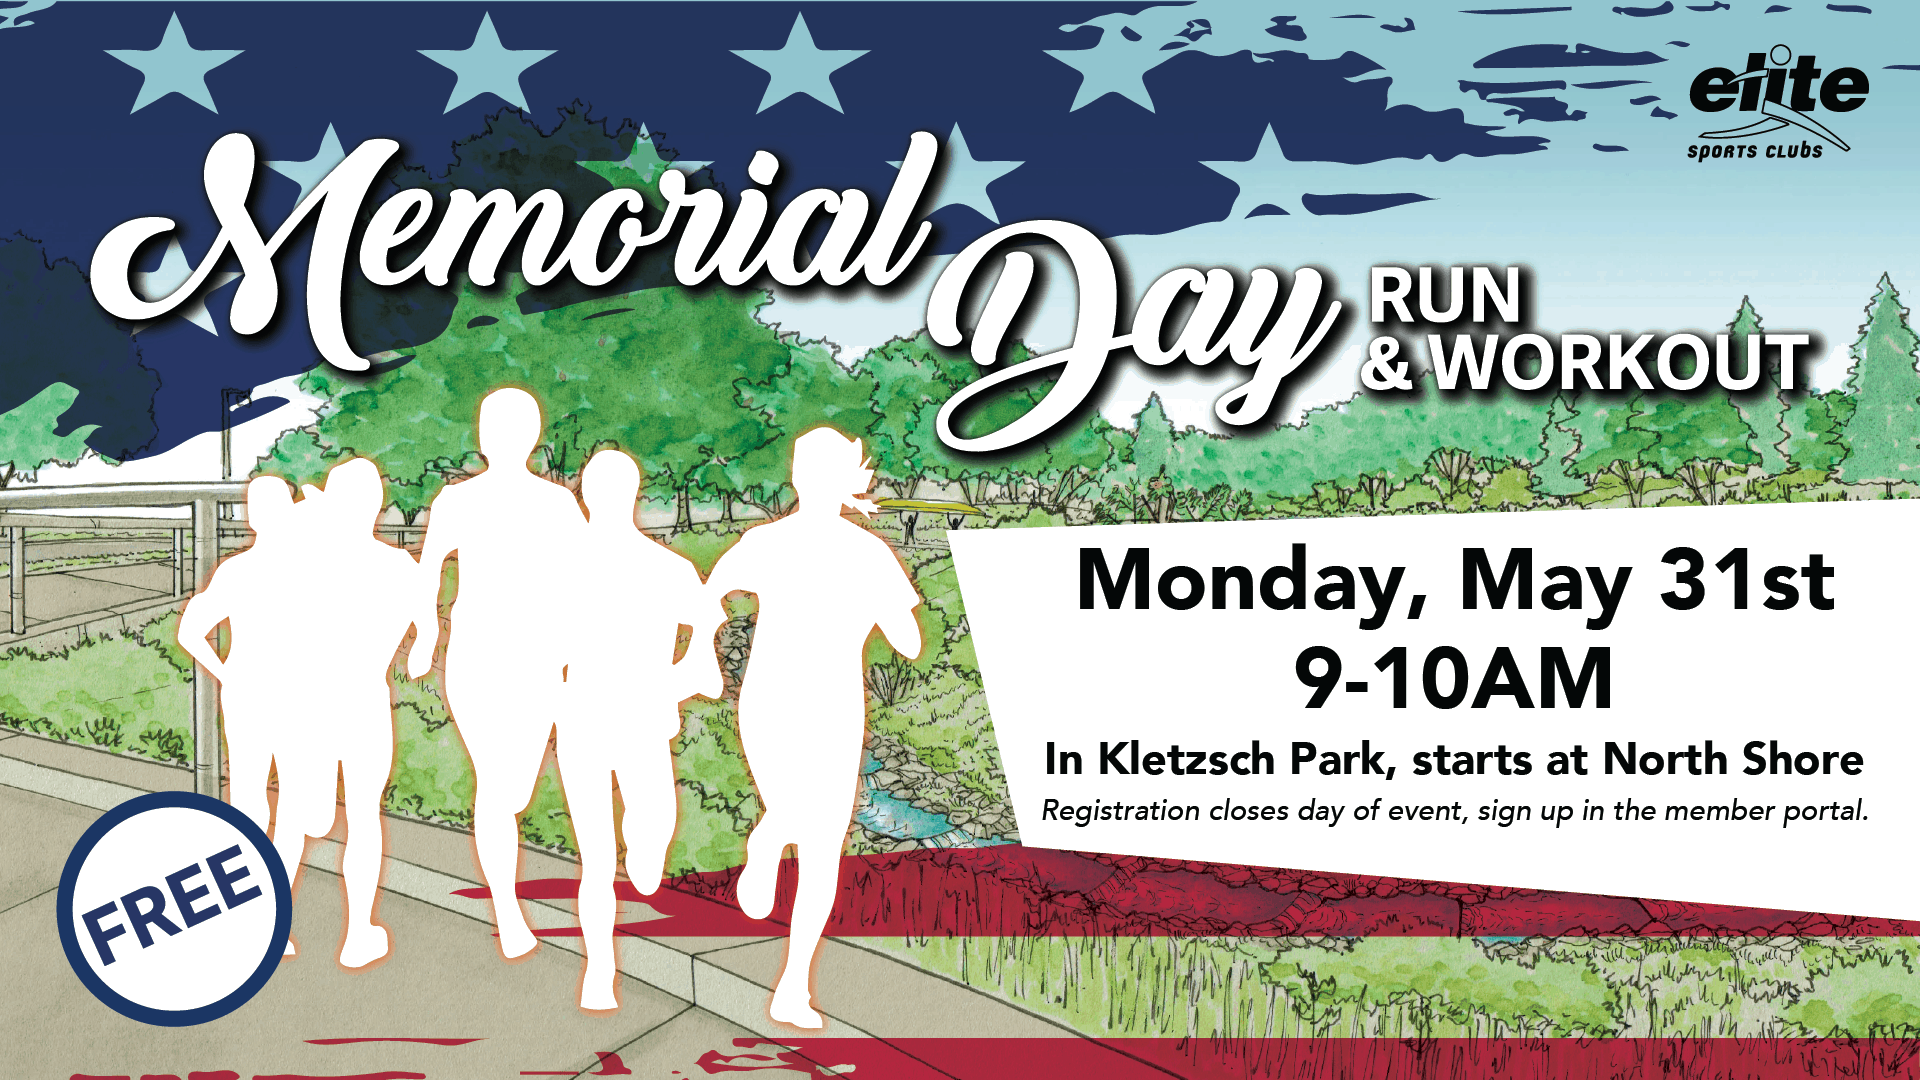 Memorial Day Run Workout - Elite North Shore - May 2021